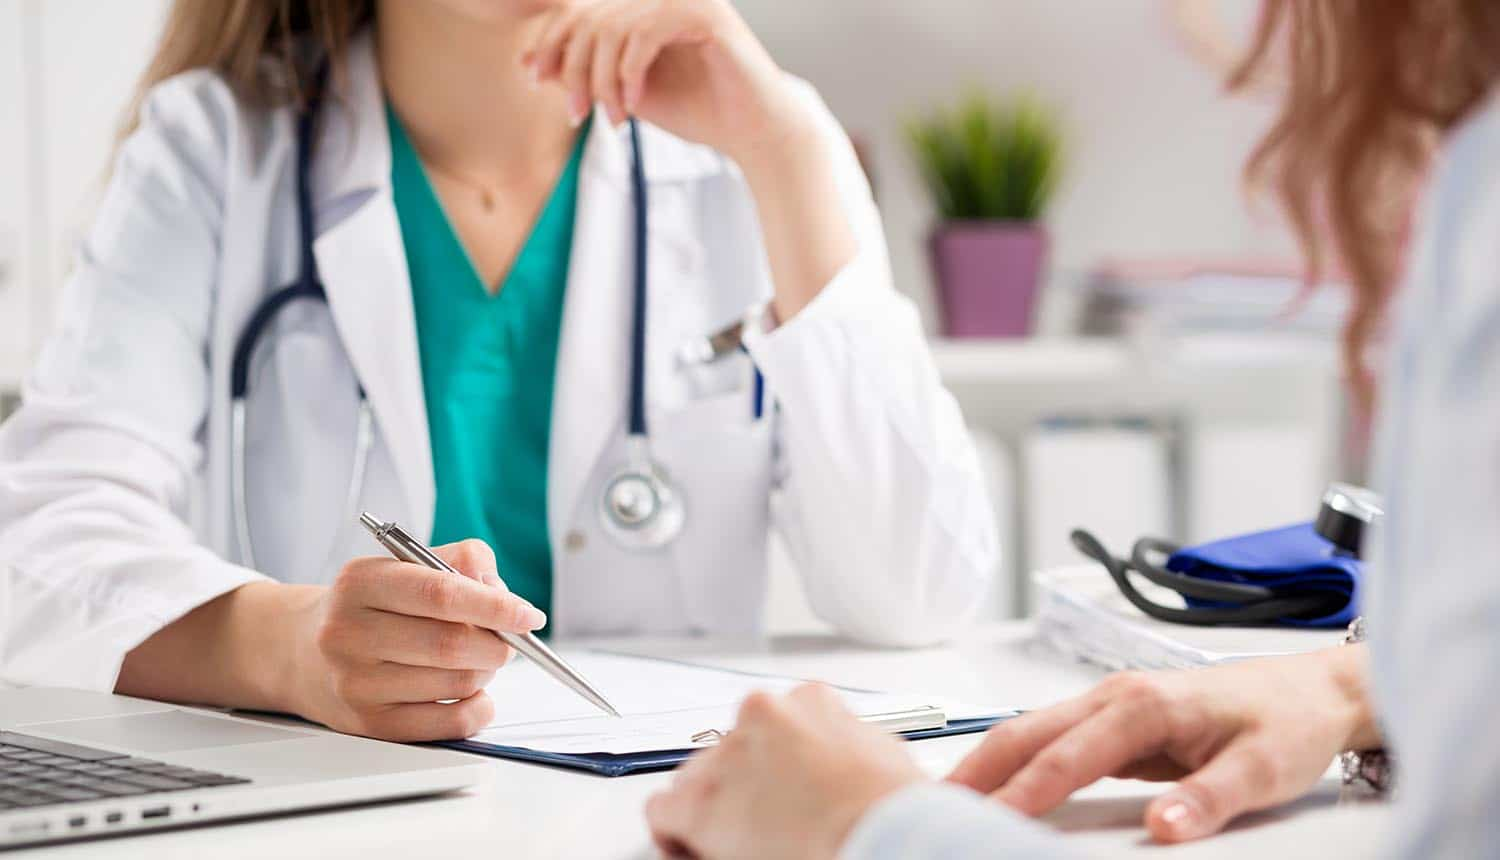 Image showing doctor speaking to patient